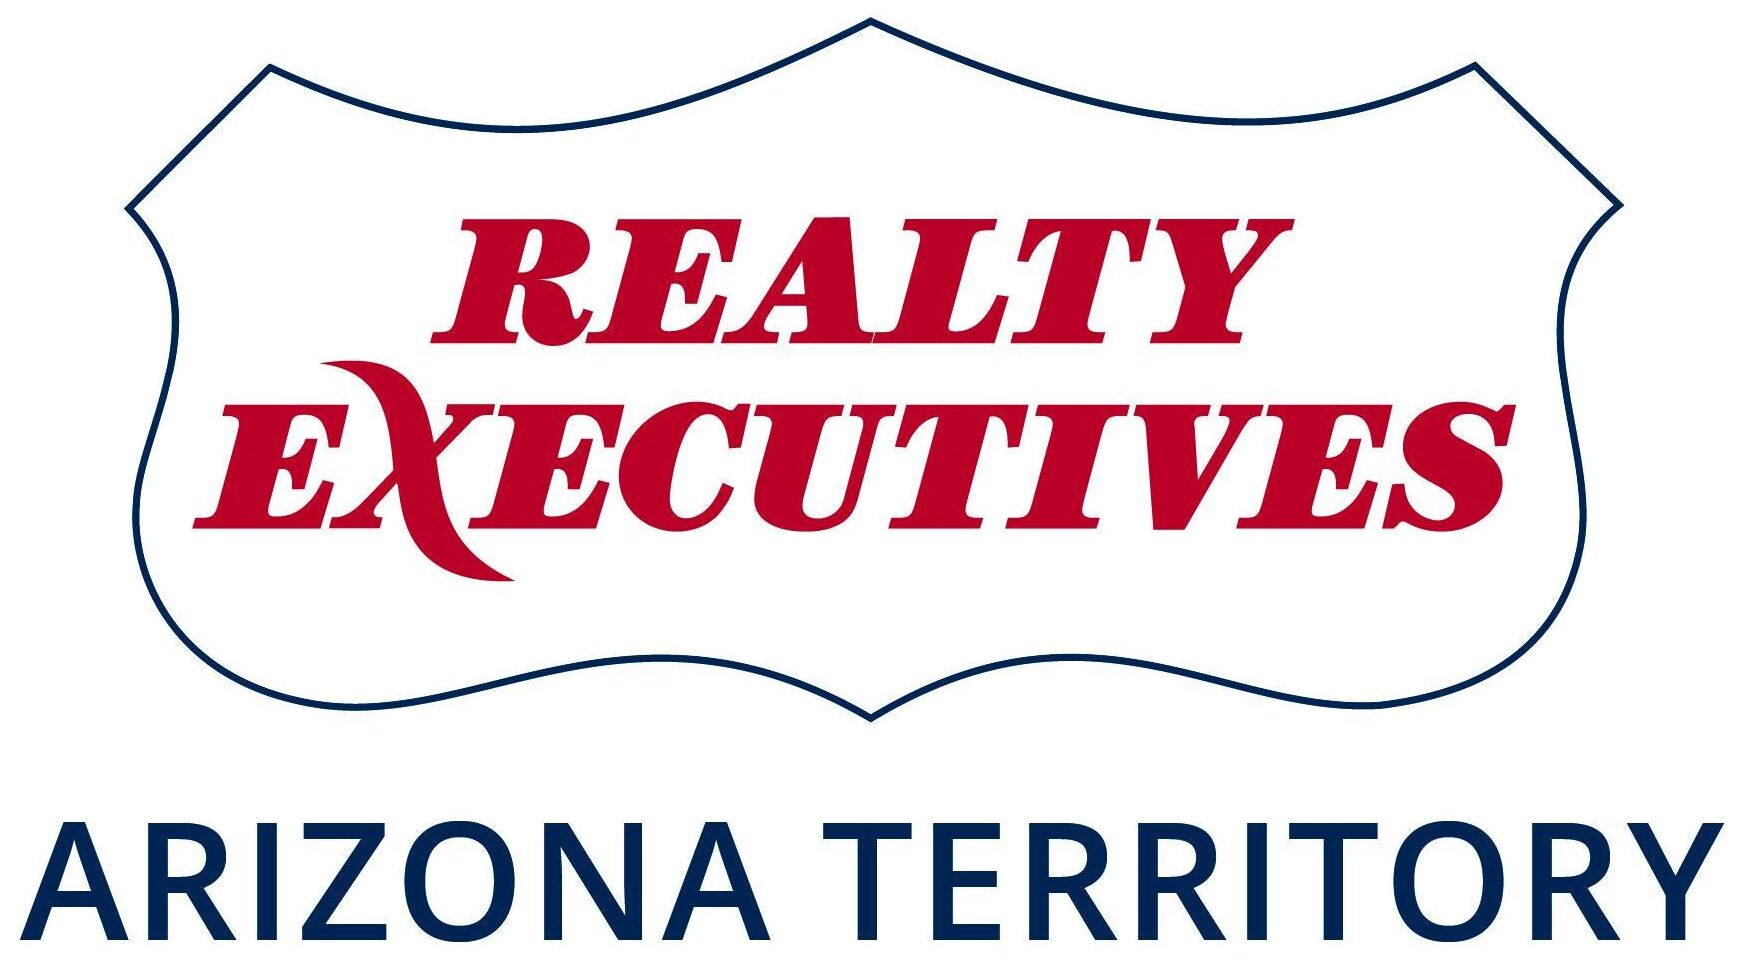 cropped-realty-executives-arizona-territory.jpg